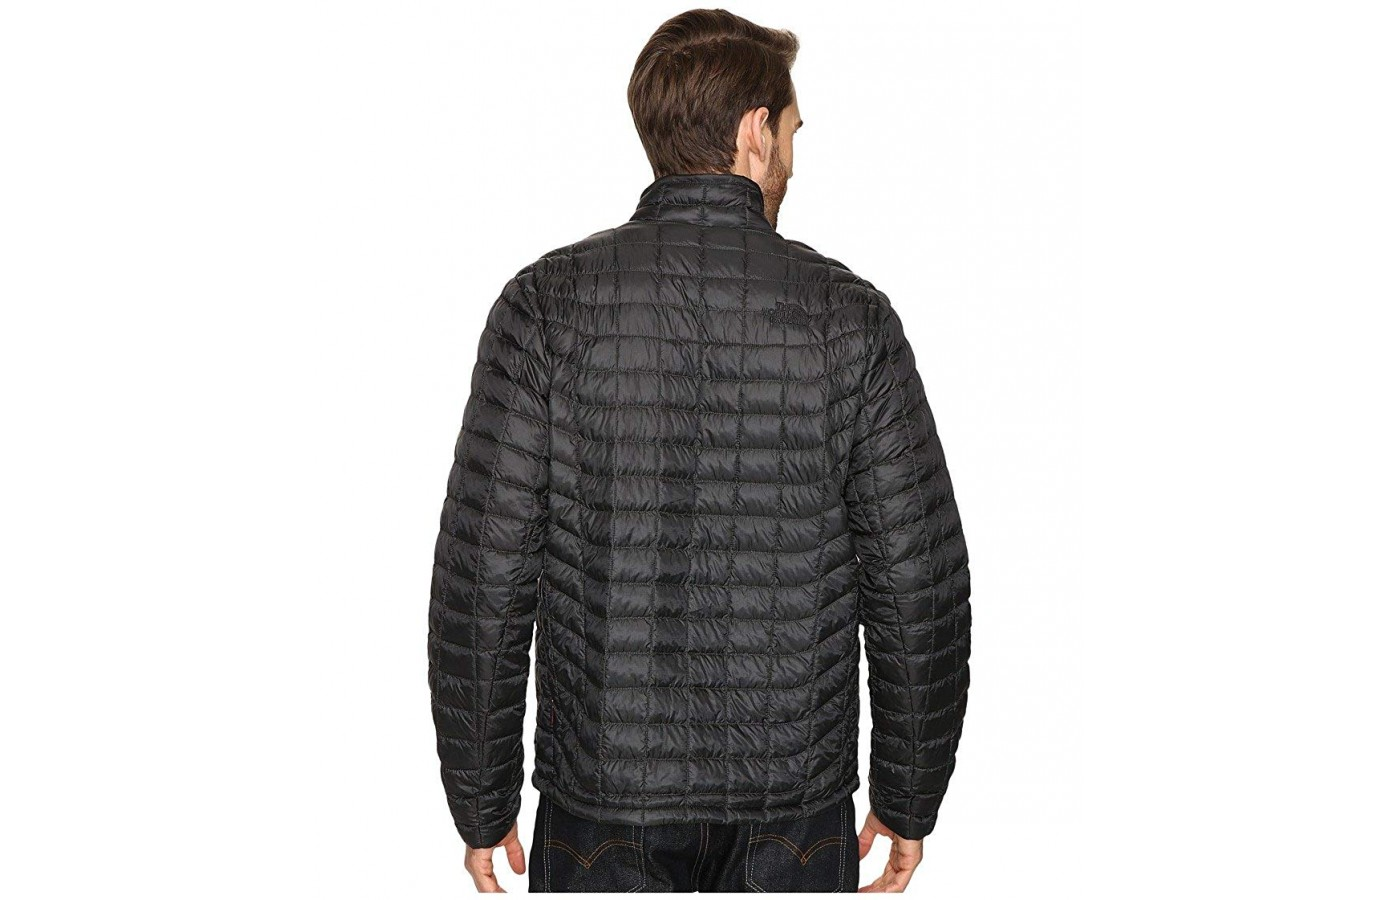 The North Face Thermoball comes in numerous colors to suit individual styles.